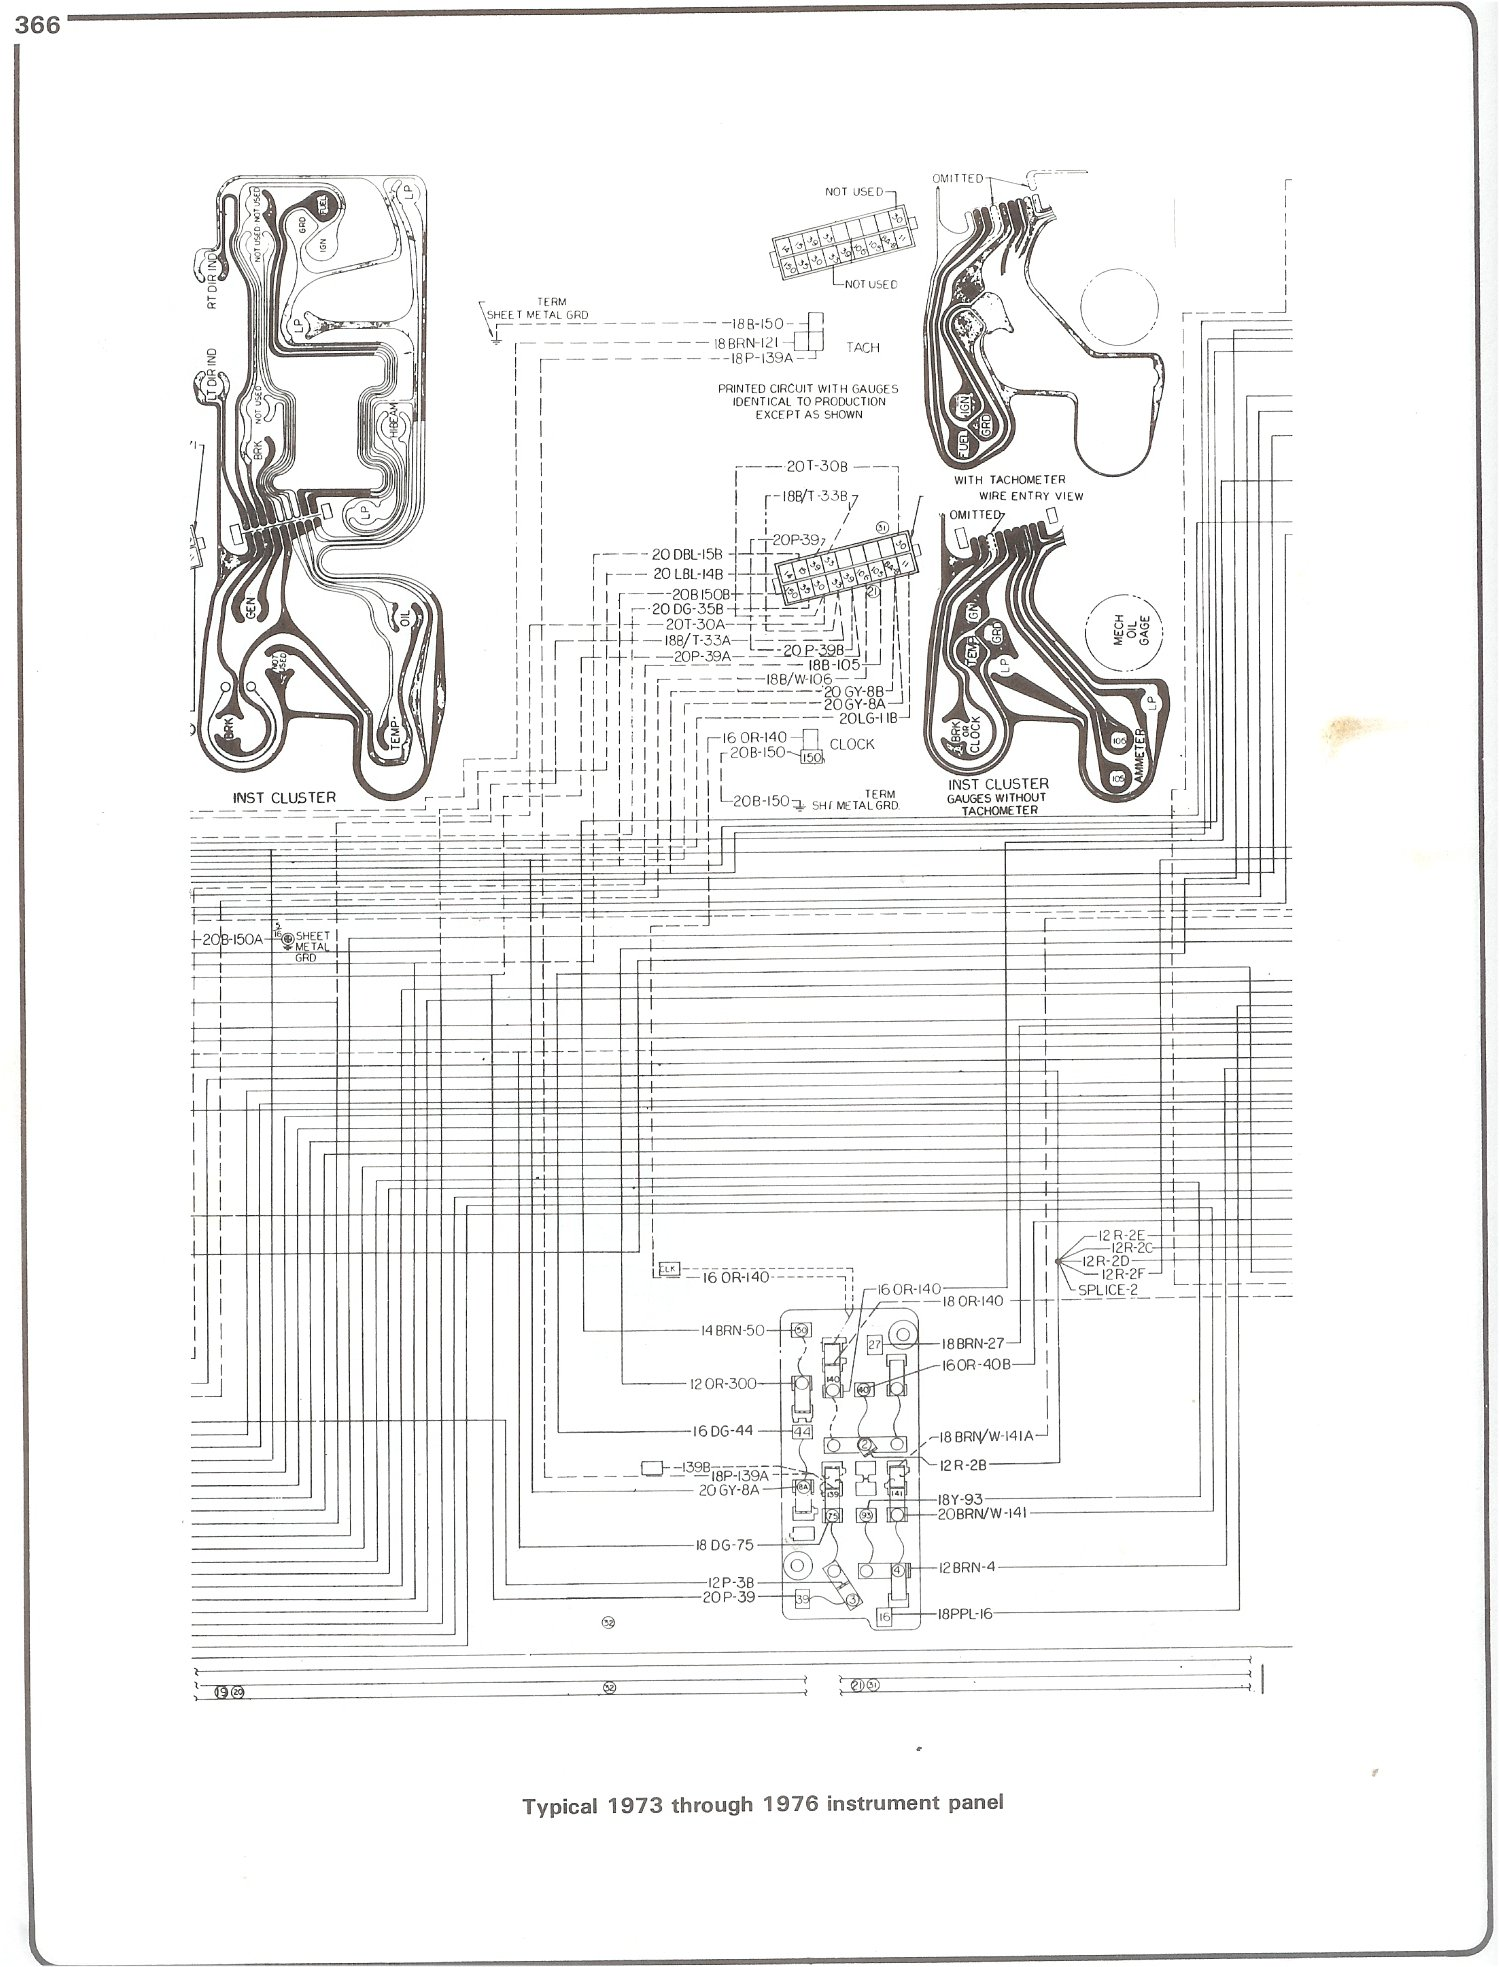 73 76_instrument complete 73 87 wiring diagrams 1984 chevy c10 wiring diagram at gsmx.co